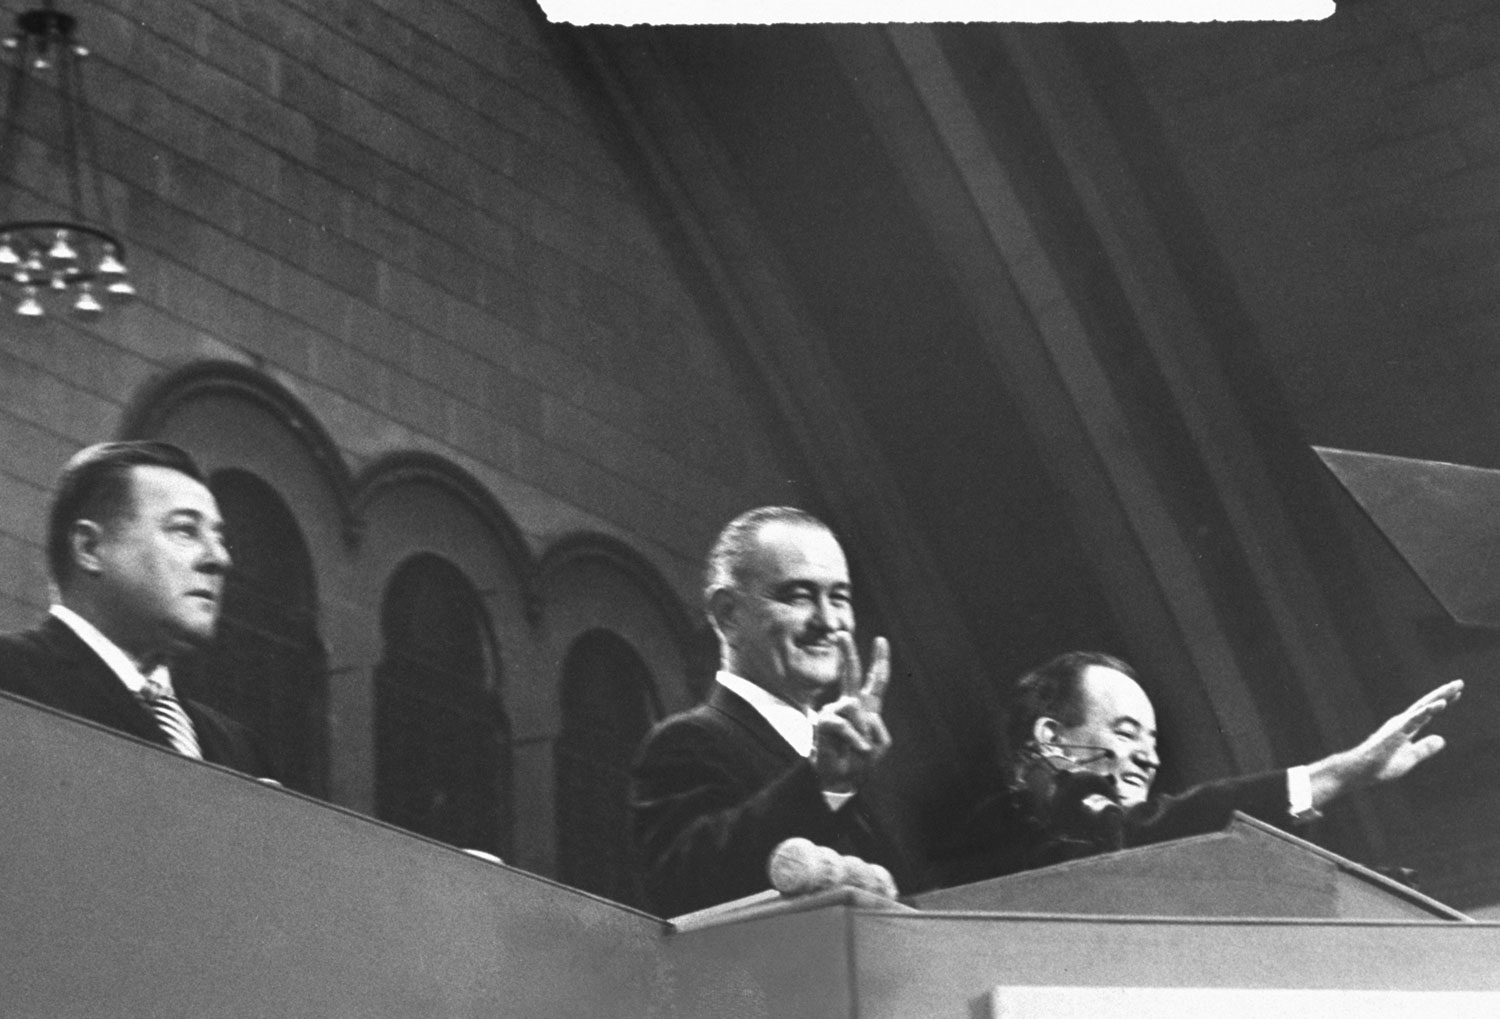 President Lyndon Johnson with his running mate Hubert Humphrey during the 1964 Democratic National Convention in Atlantic City, New Jersey.